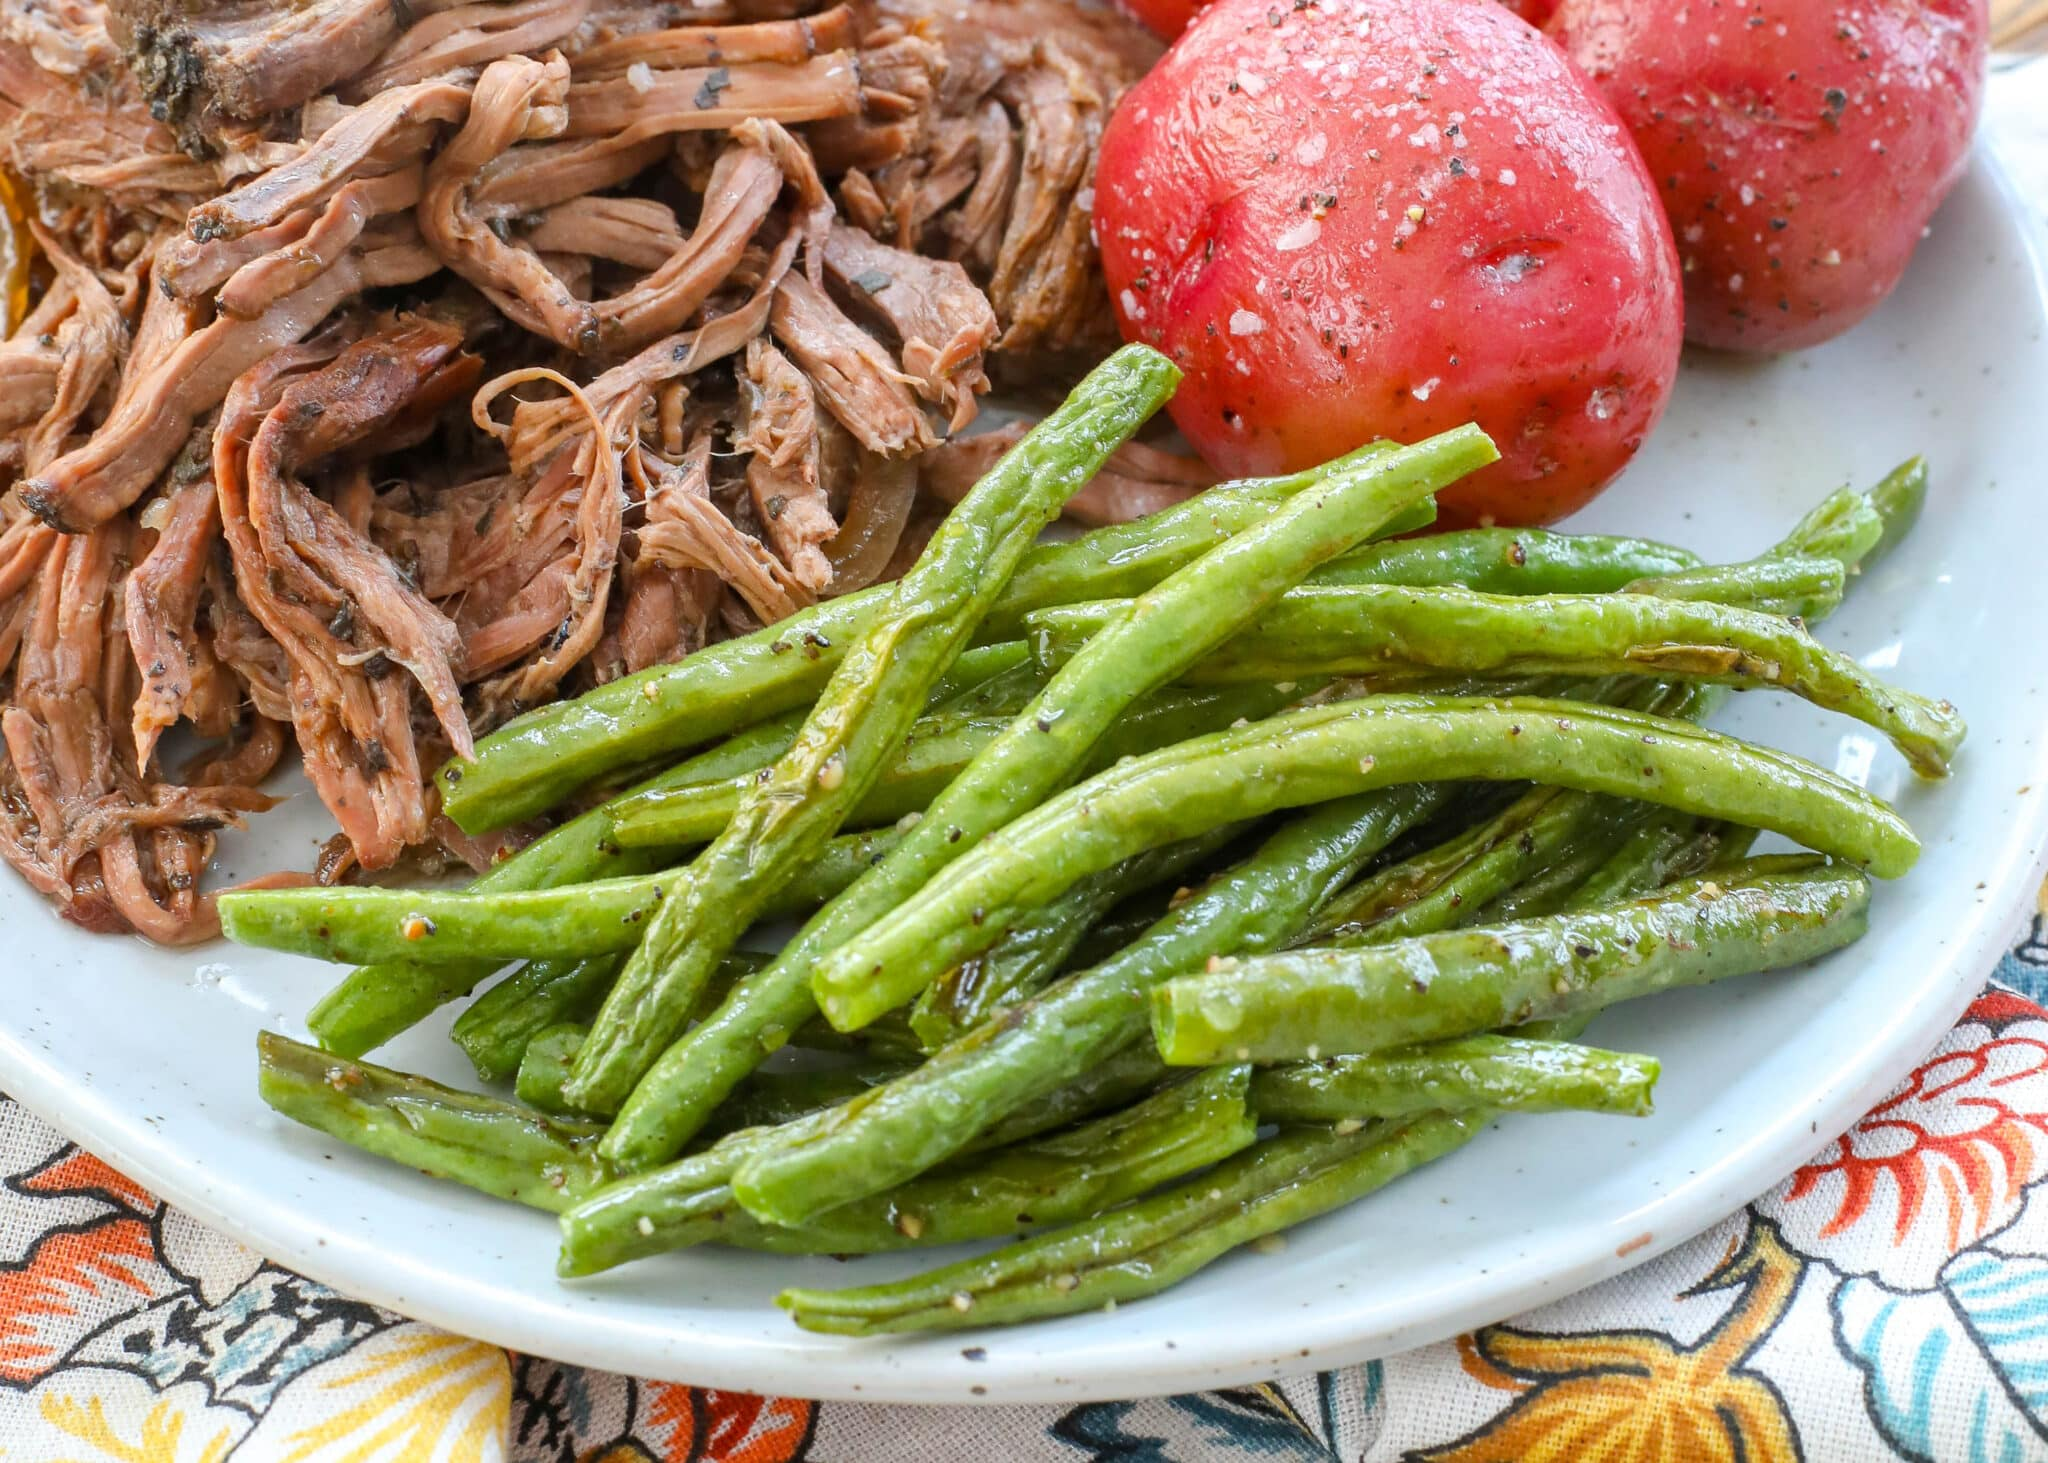 Roasted Green Beans are a terrific side dish that you can prep in just minutes.